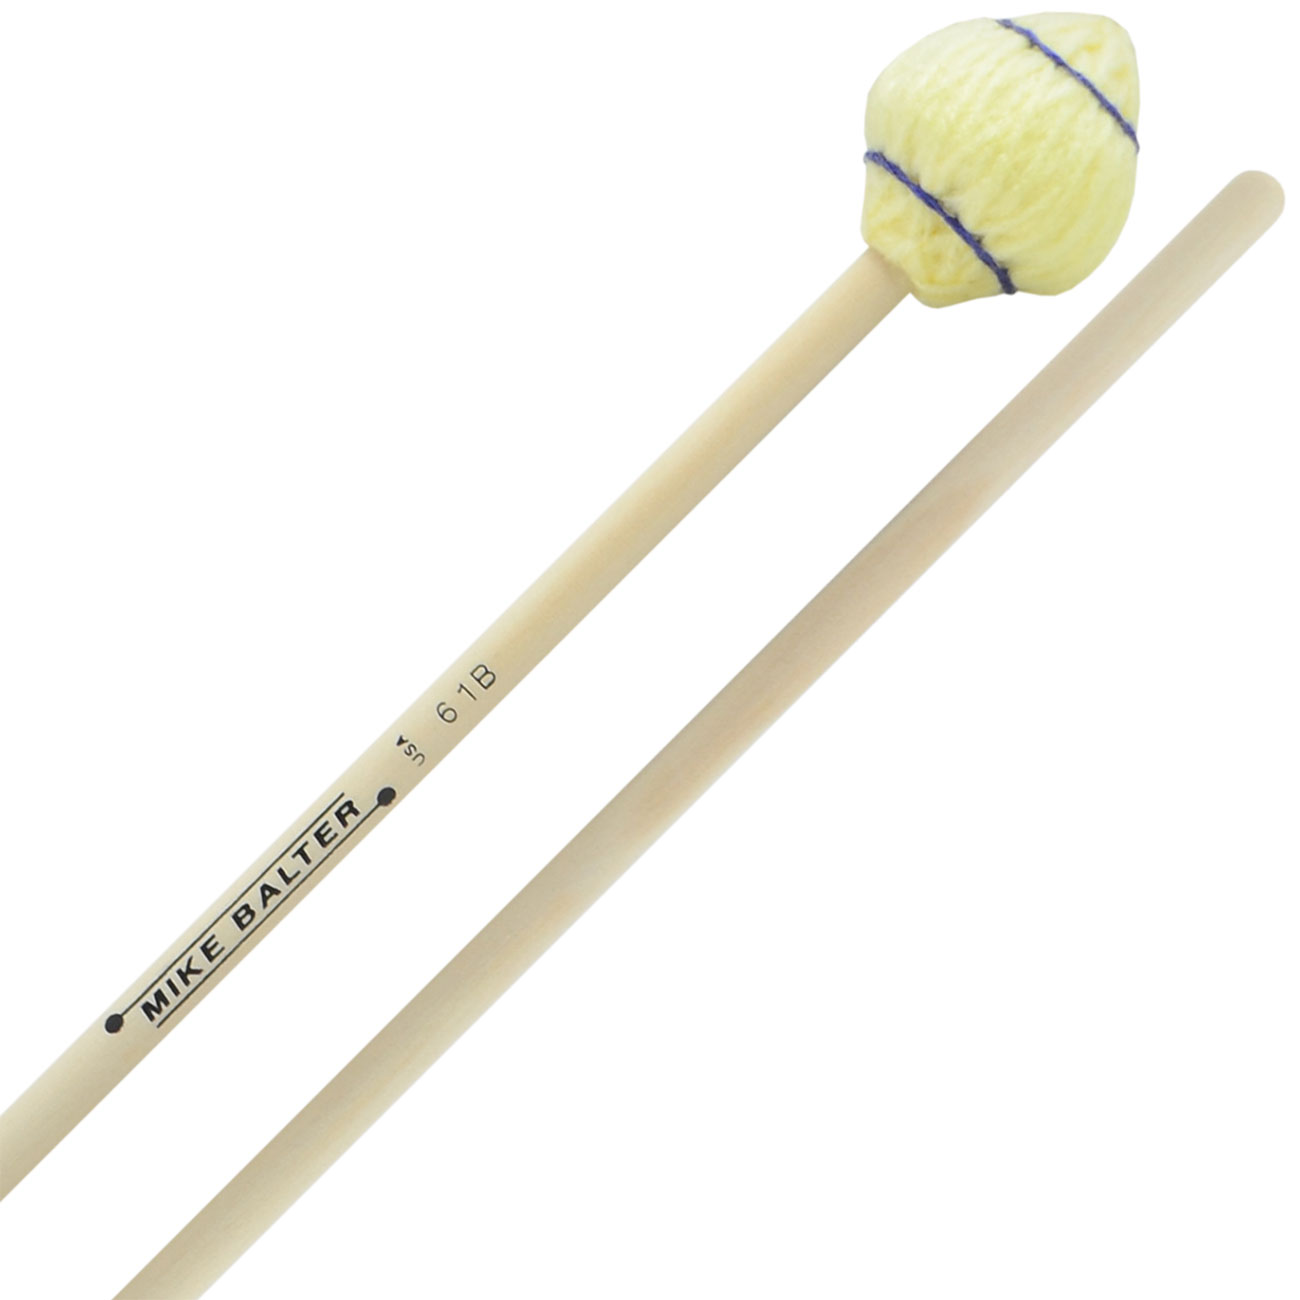 Mike Balter Mushroom Head Medium Hard Marimba Mallets with Birch Handles